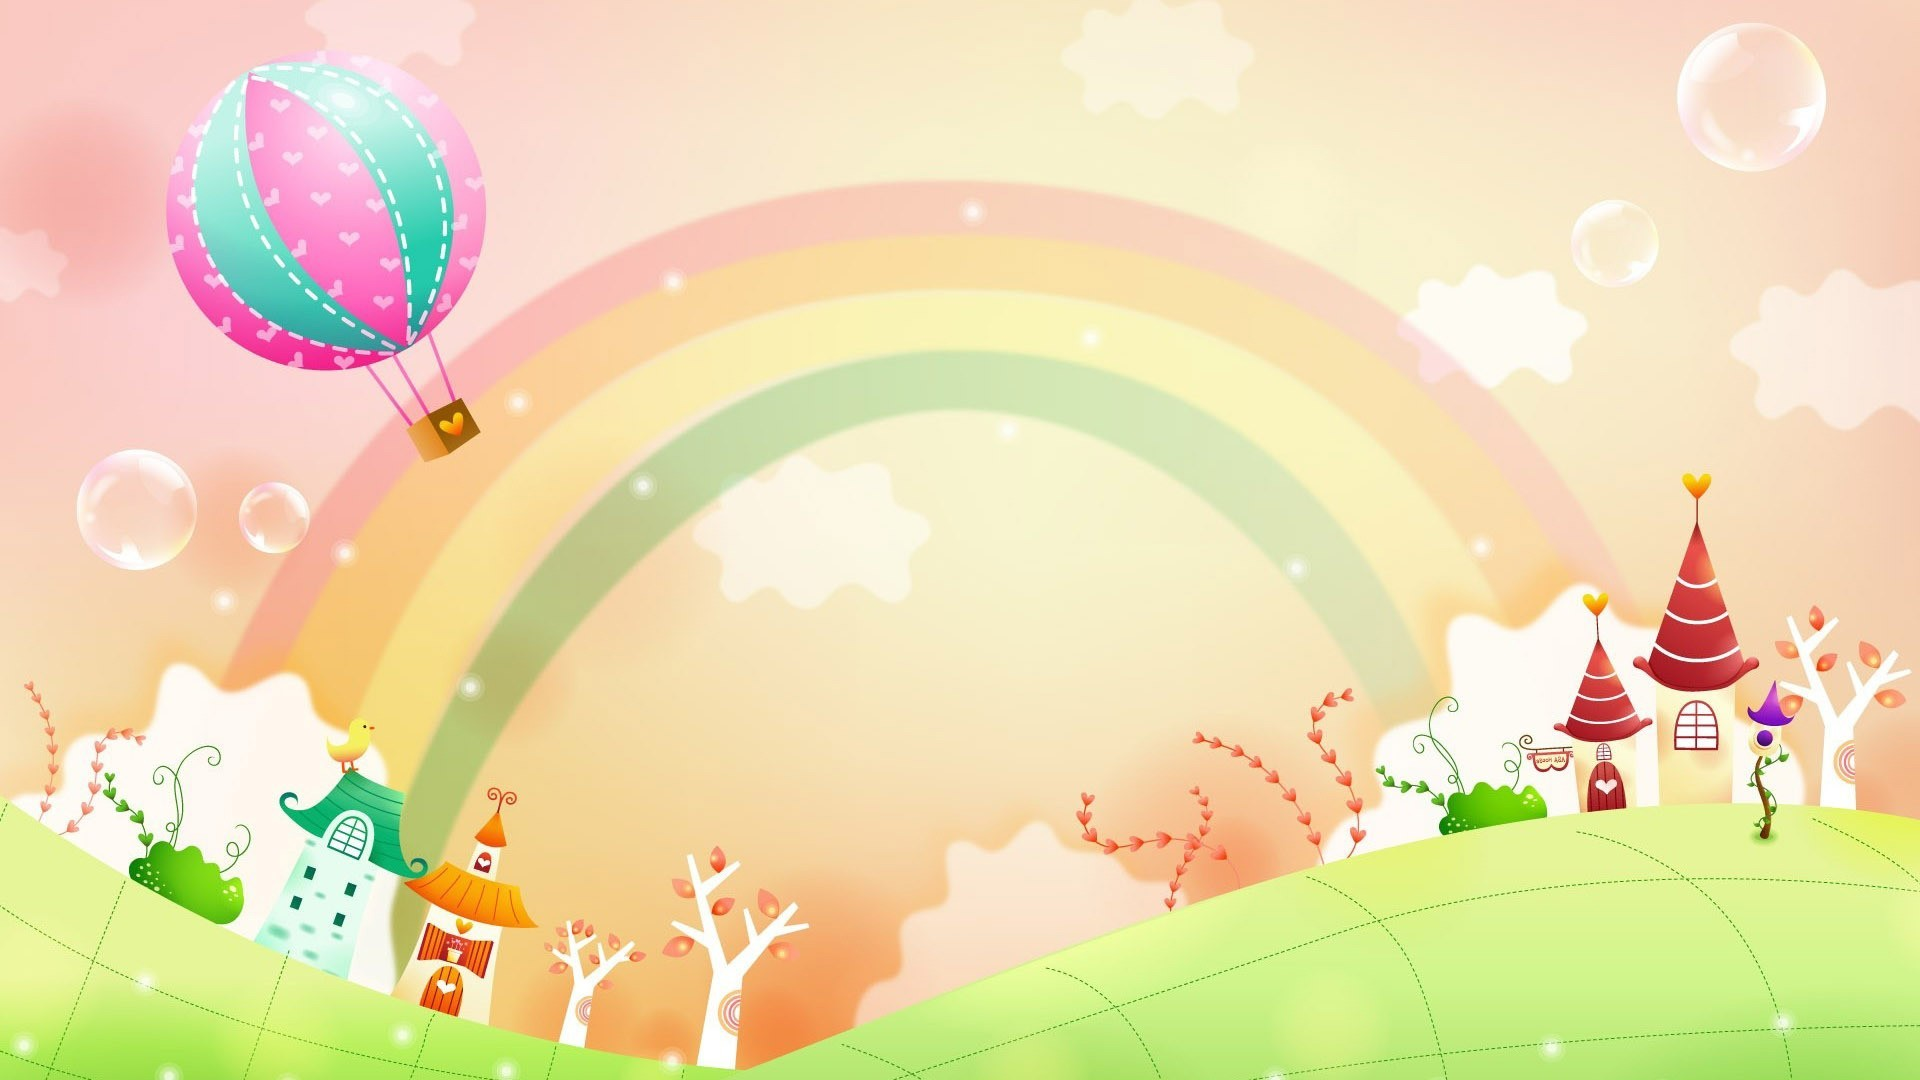 1920x1080 Rainbow Colors Wallpaper For Desktop with image resolution  pixel.  You can use this wallpaper